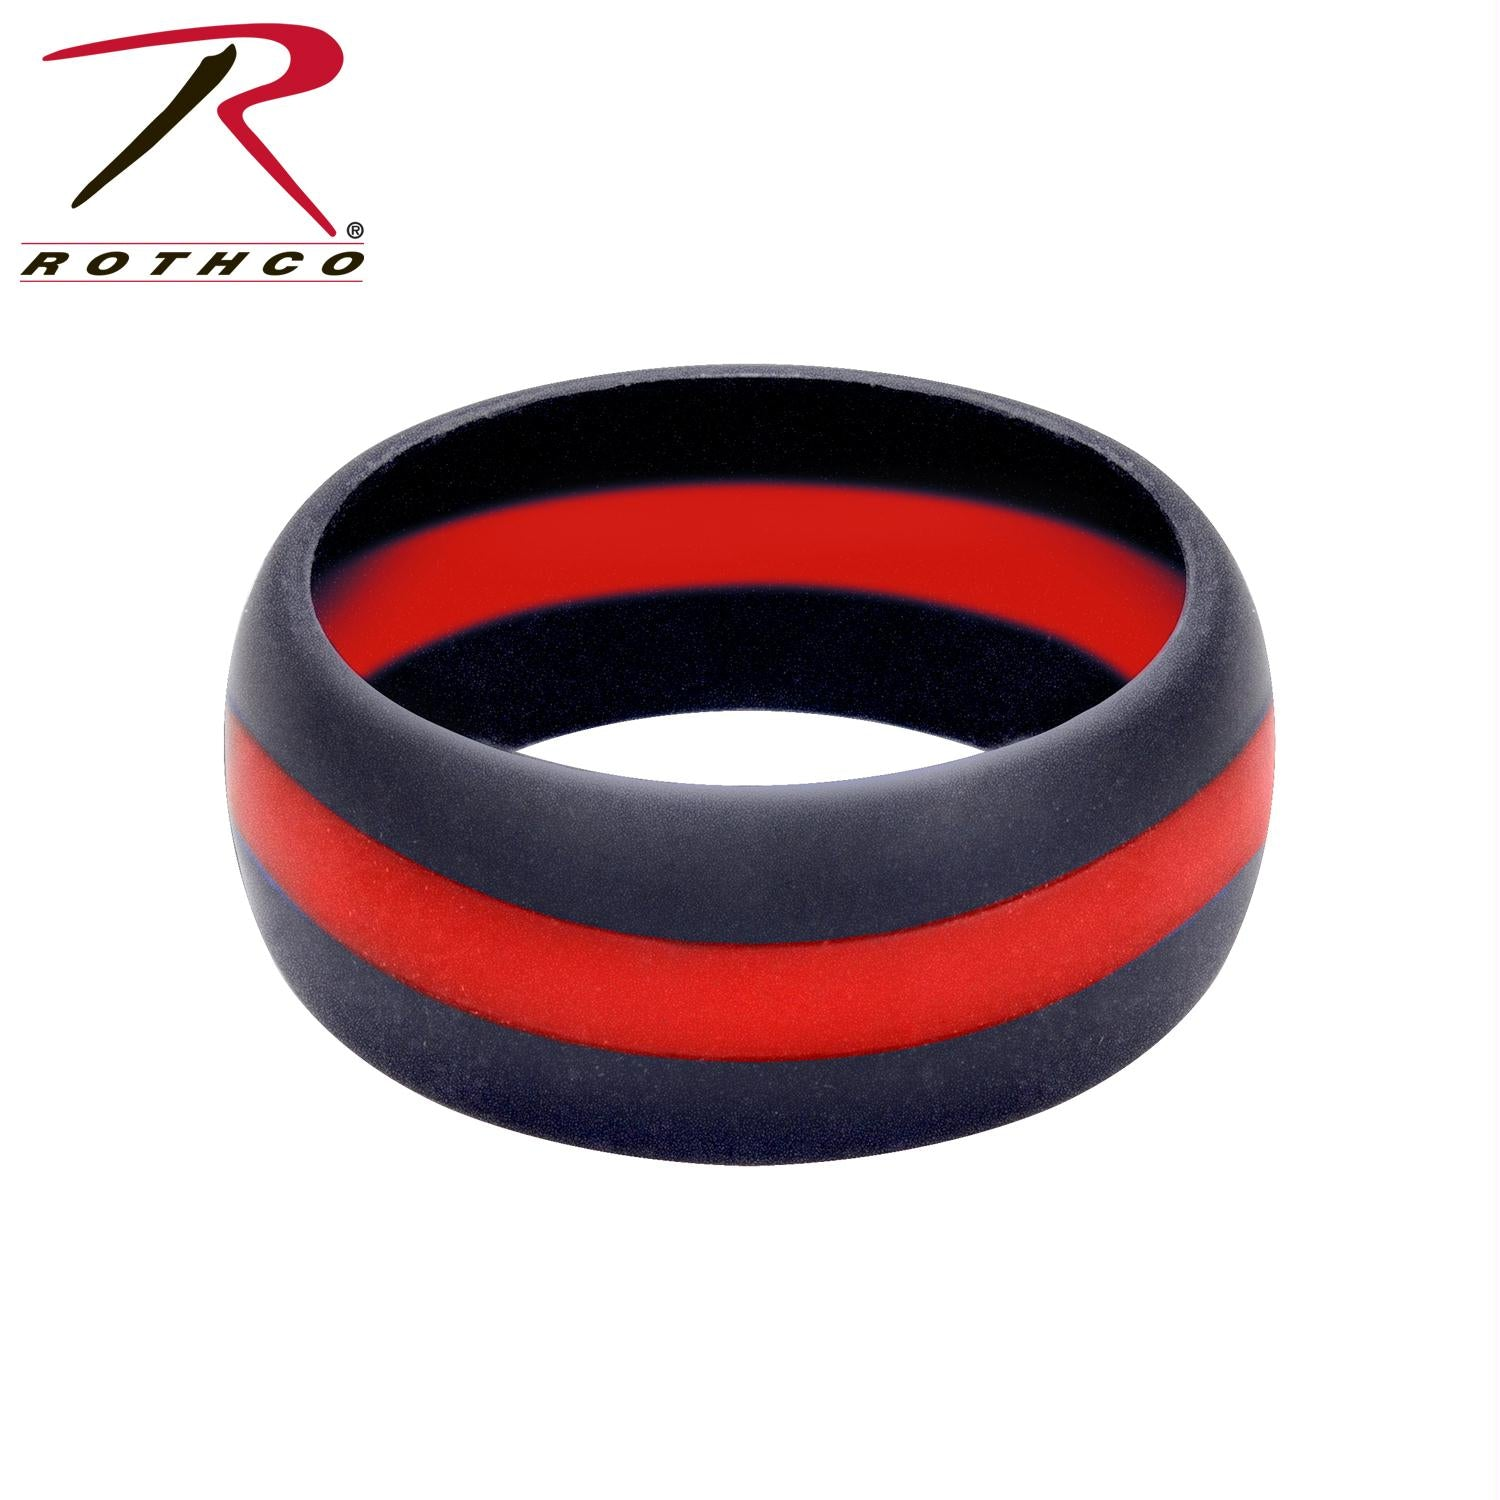 Rothco Thin Red Line Silicone Ring